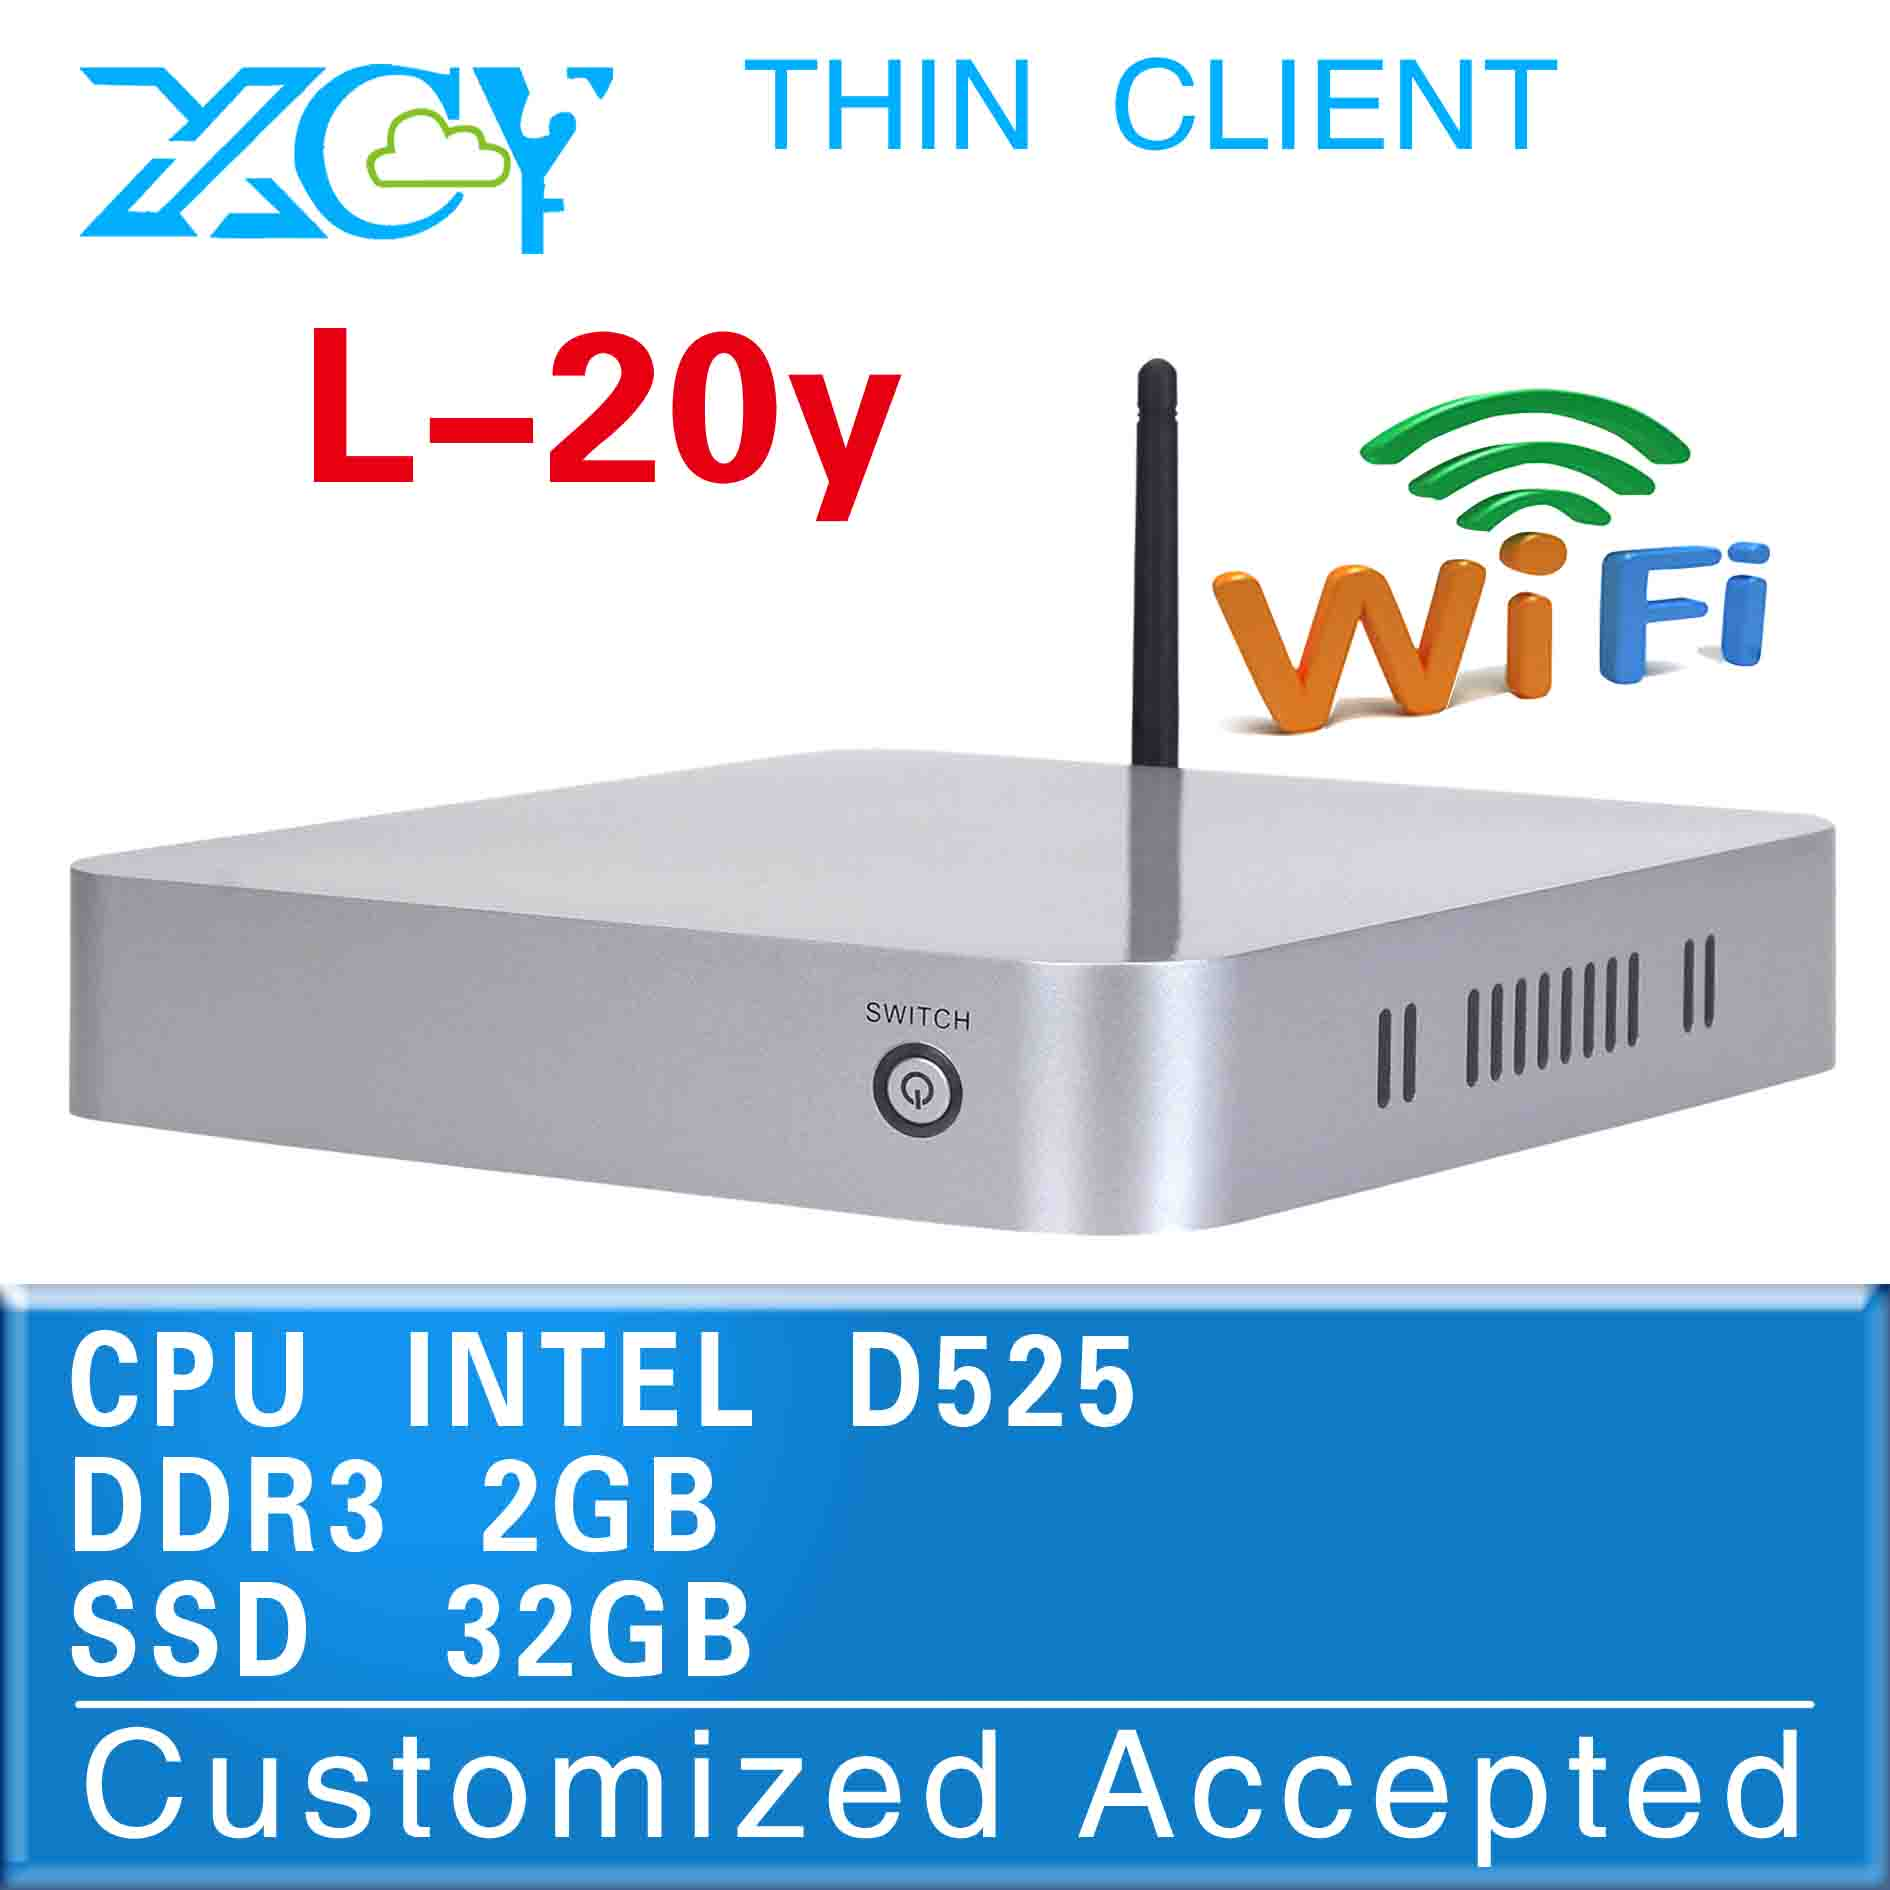 windows mini pc micro computer latest devices computer L-20Y D525 support win 7 XP system In Stock !(China (Mainland))